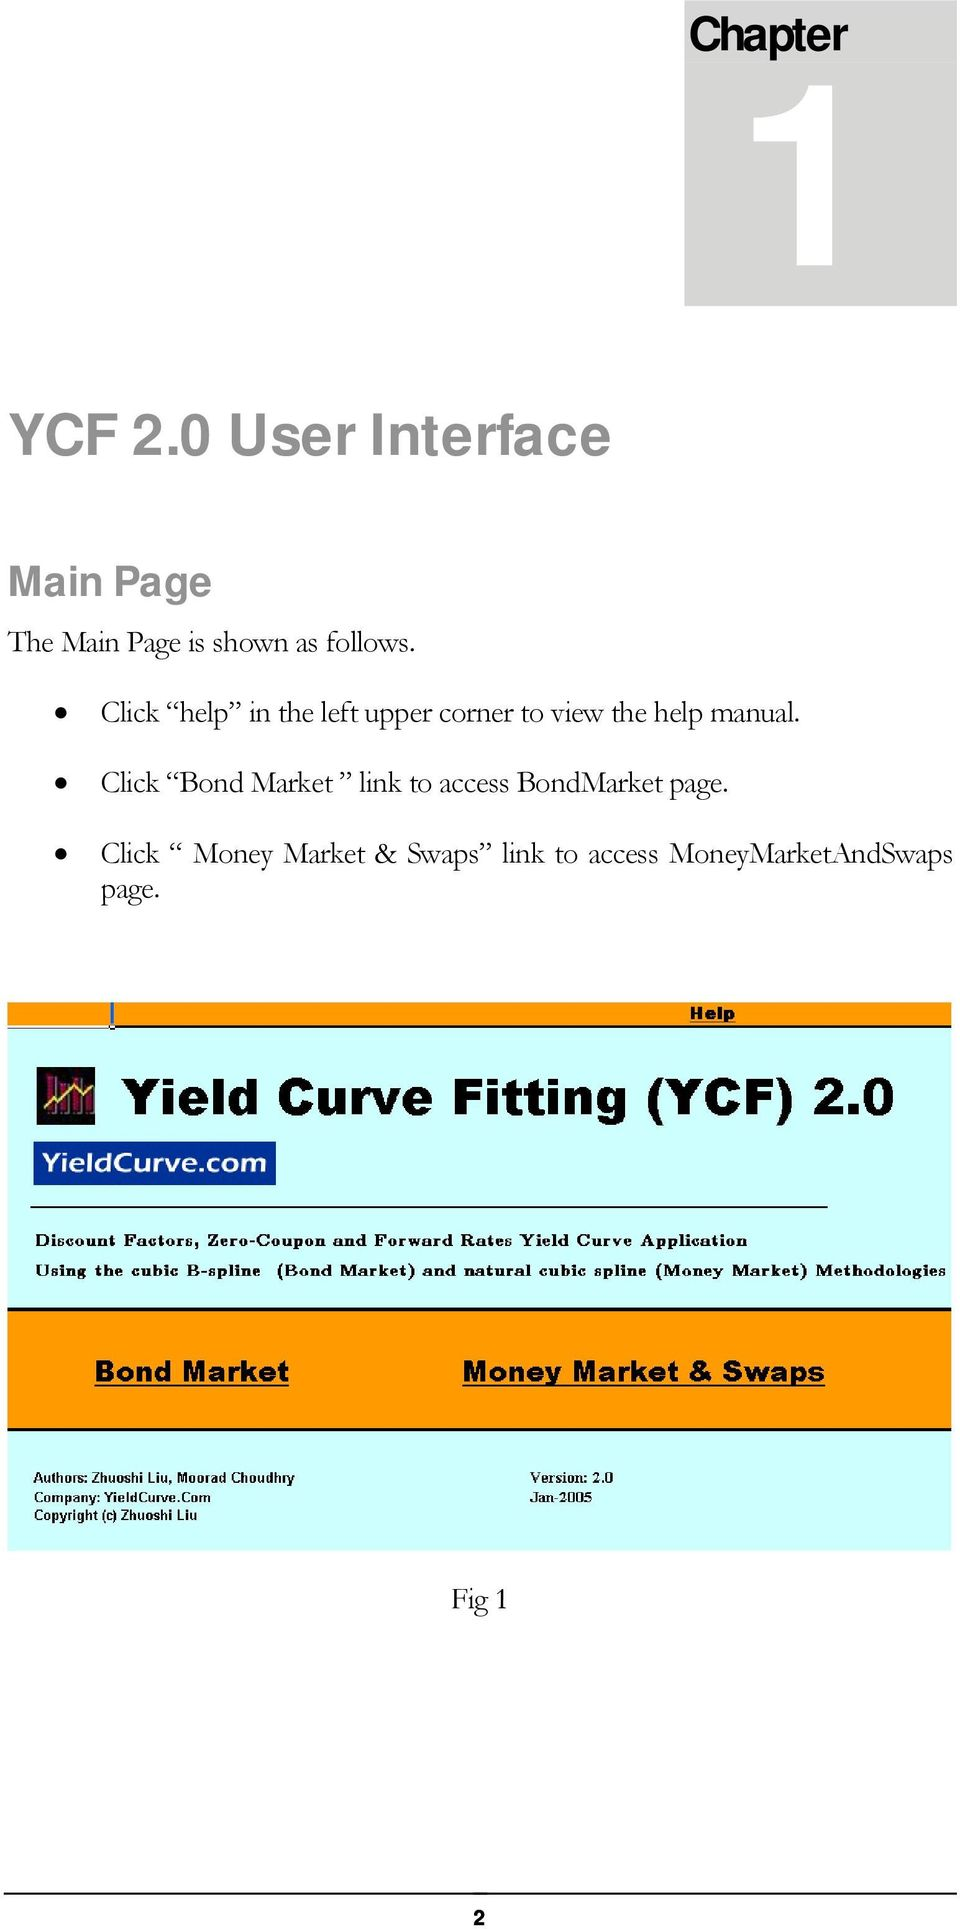 YIELD CURVE FITTING 2 0 Constructing Bond and Money Market Yield